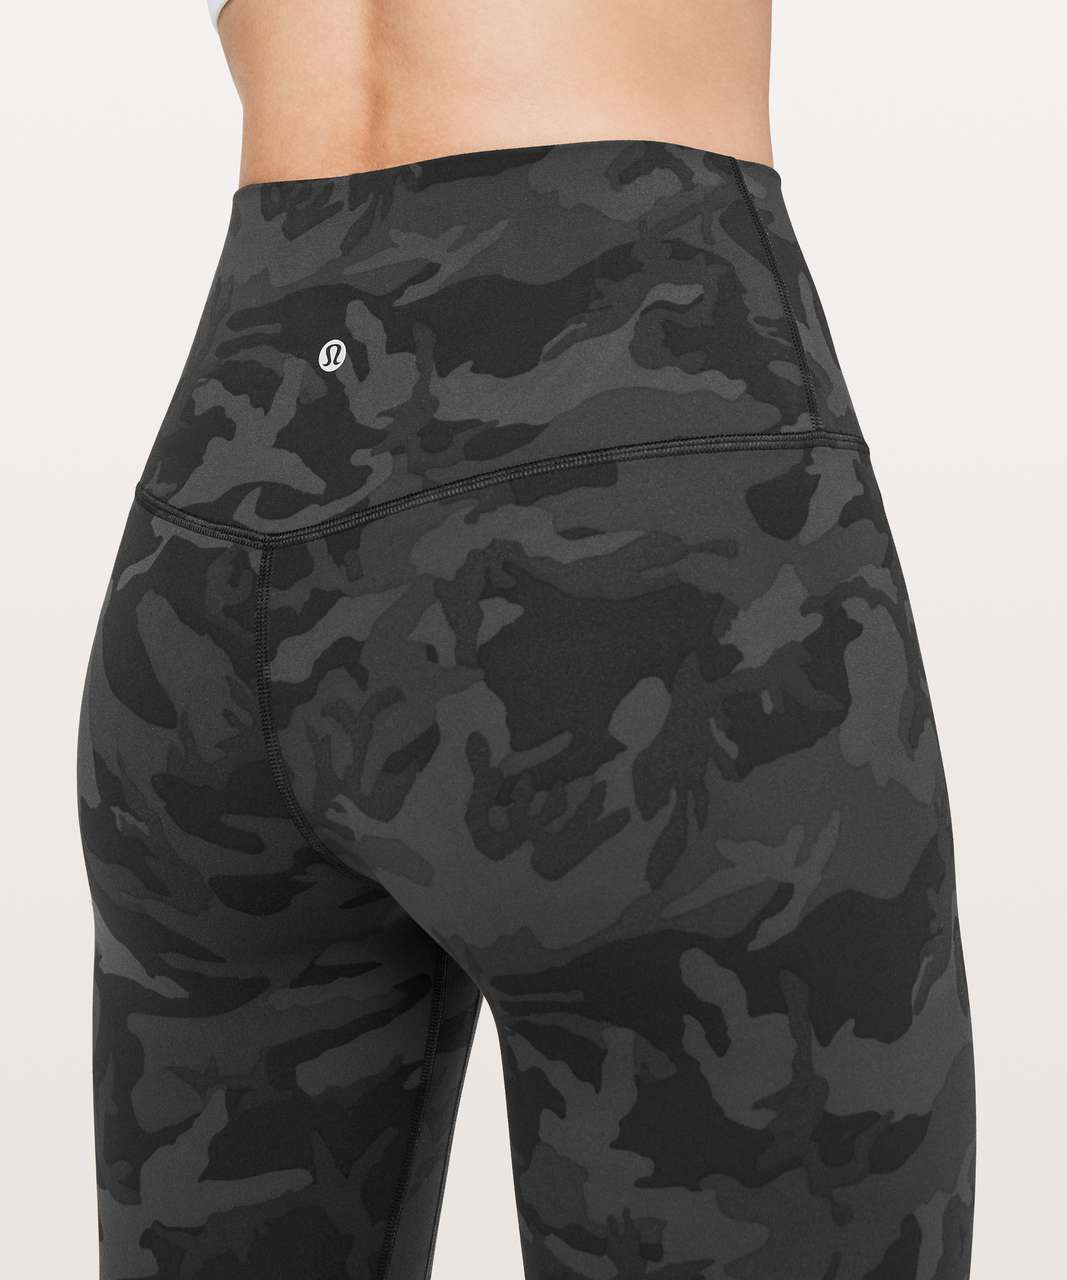 "Lululemon Align Pant *Full Length 28"" - Incognito Camo Multi Grey"